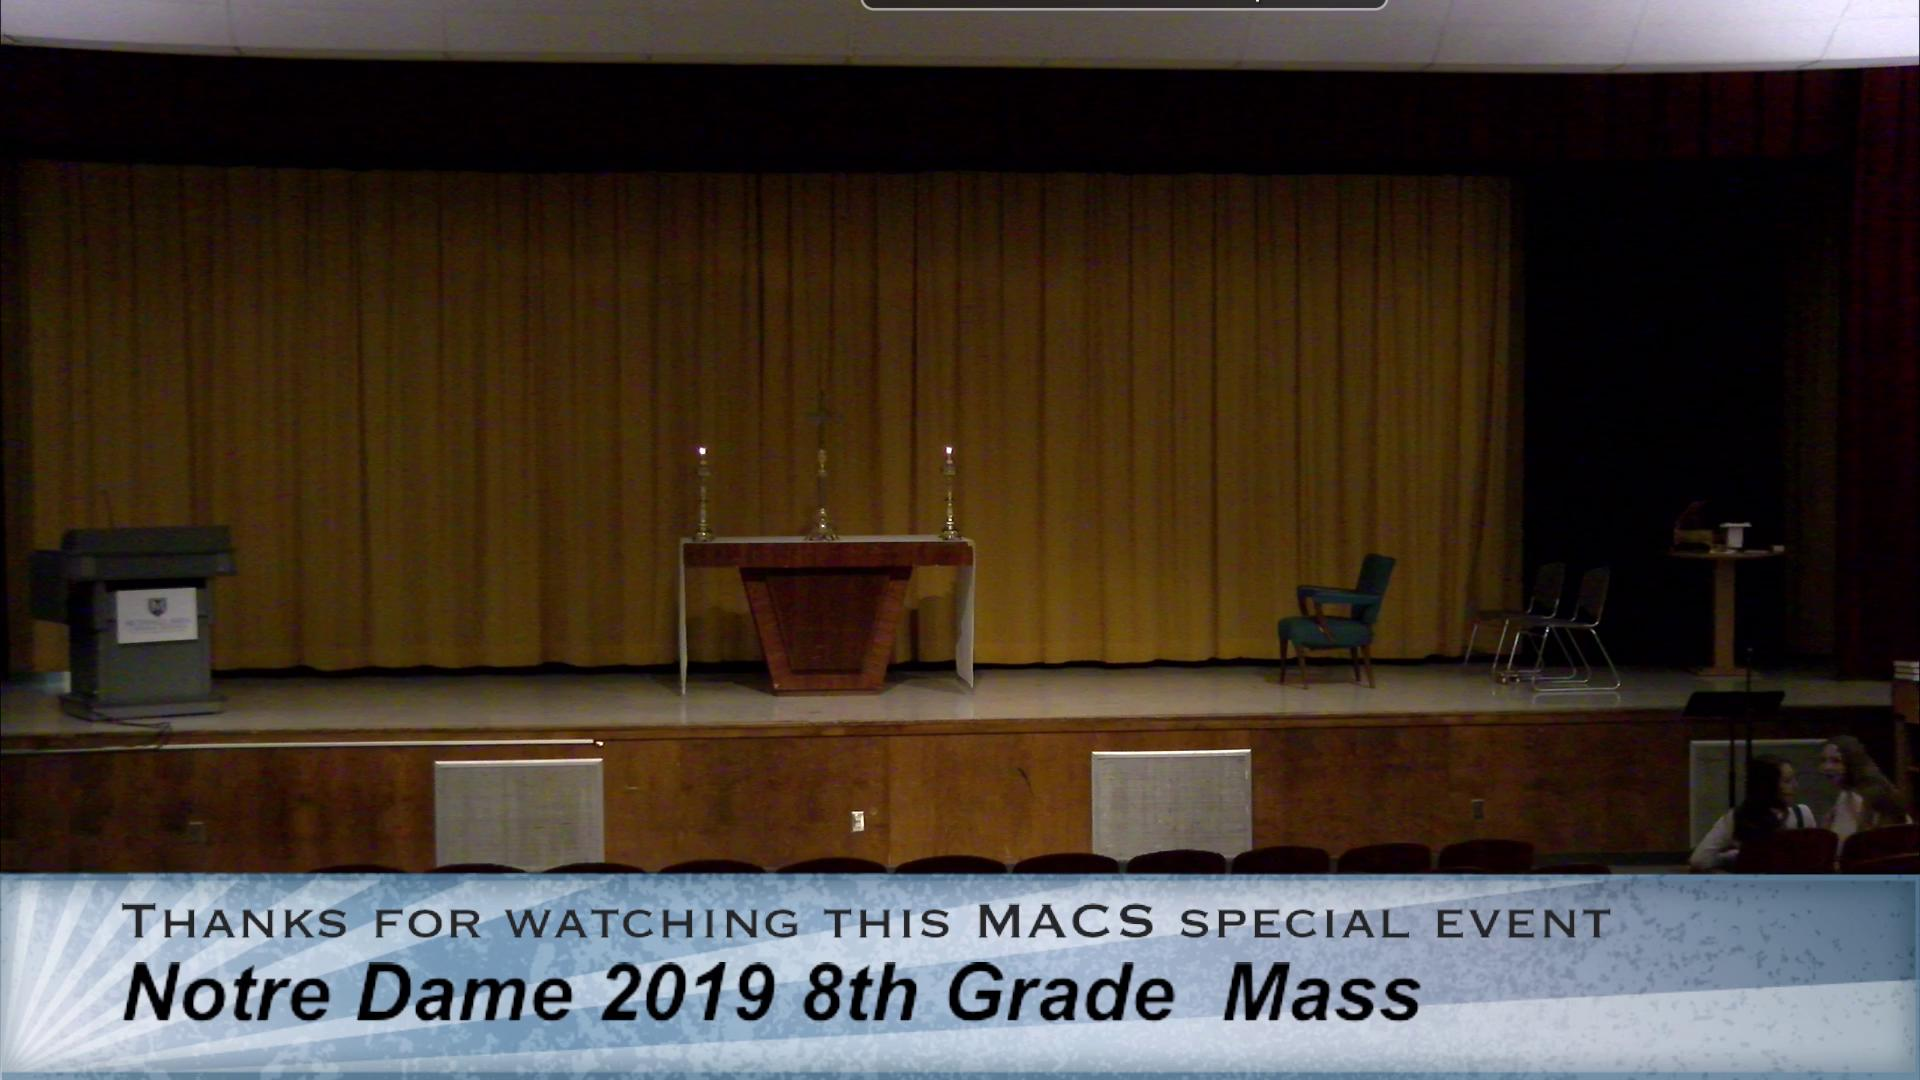 2019 Notre Dame 8th Grade Mass and Completion Cere...